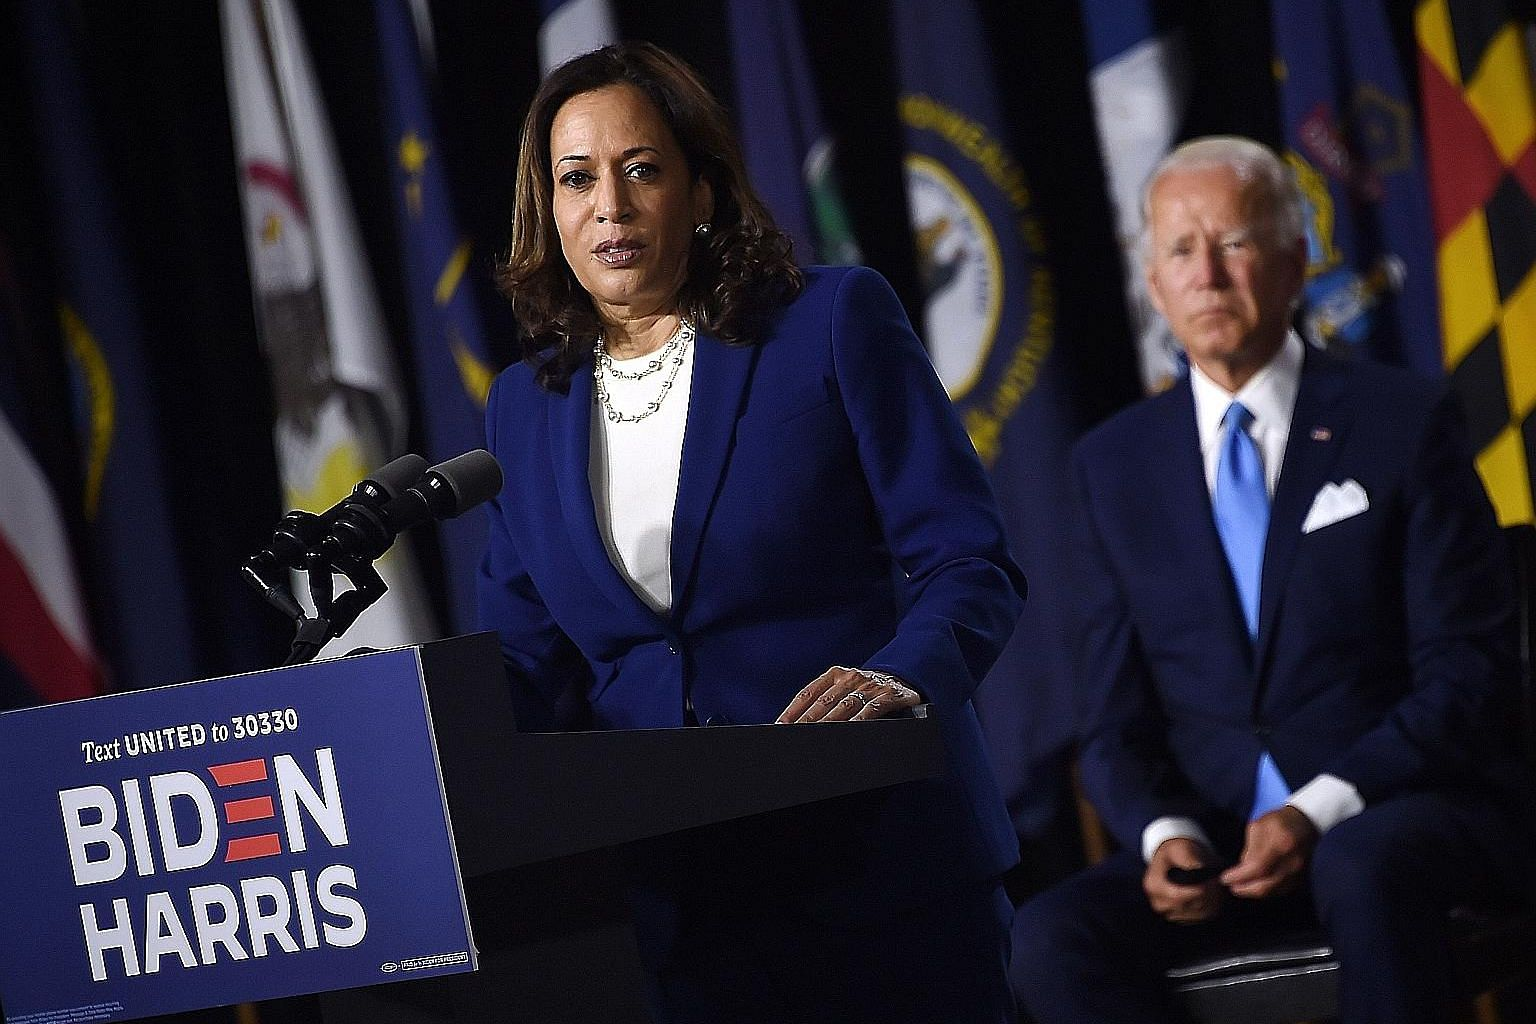 Democratic vice-presidential candidate Kamala Harris at her first joint press conference with the party's presidential candidate Joe Biden in Delaware on Wednesday. One thing Ms Harris brings to the ticket is the enthusiasm she generates, and that is